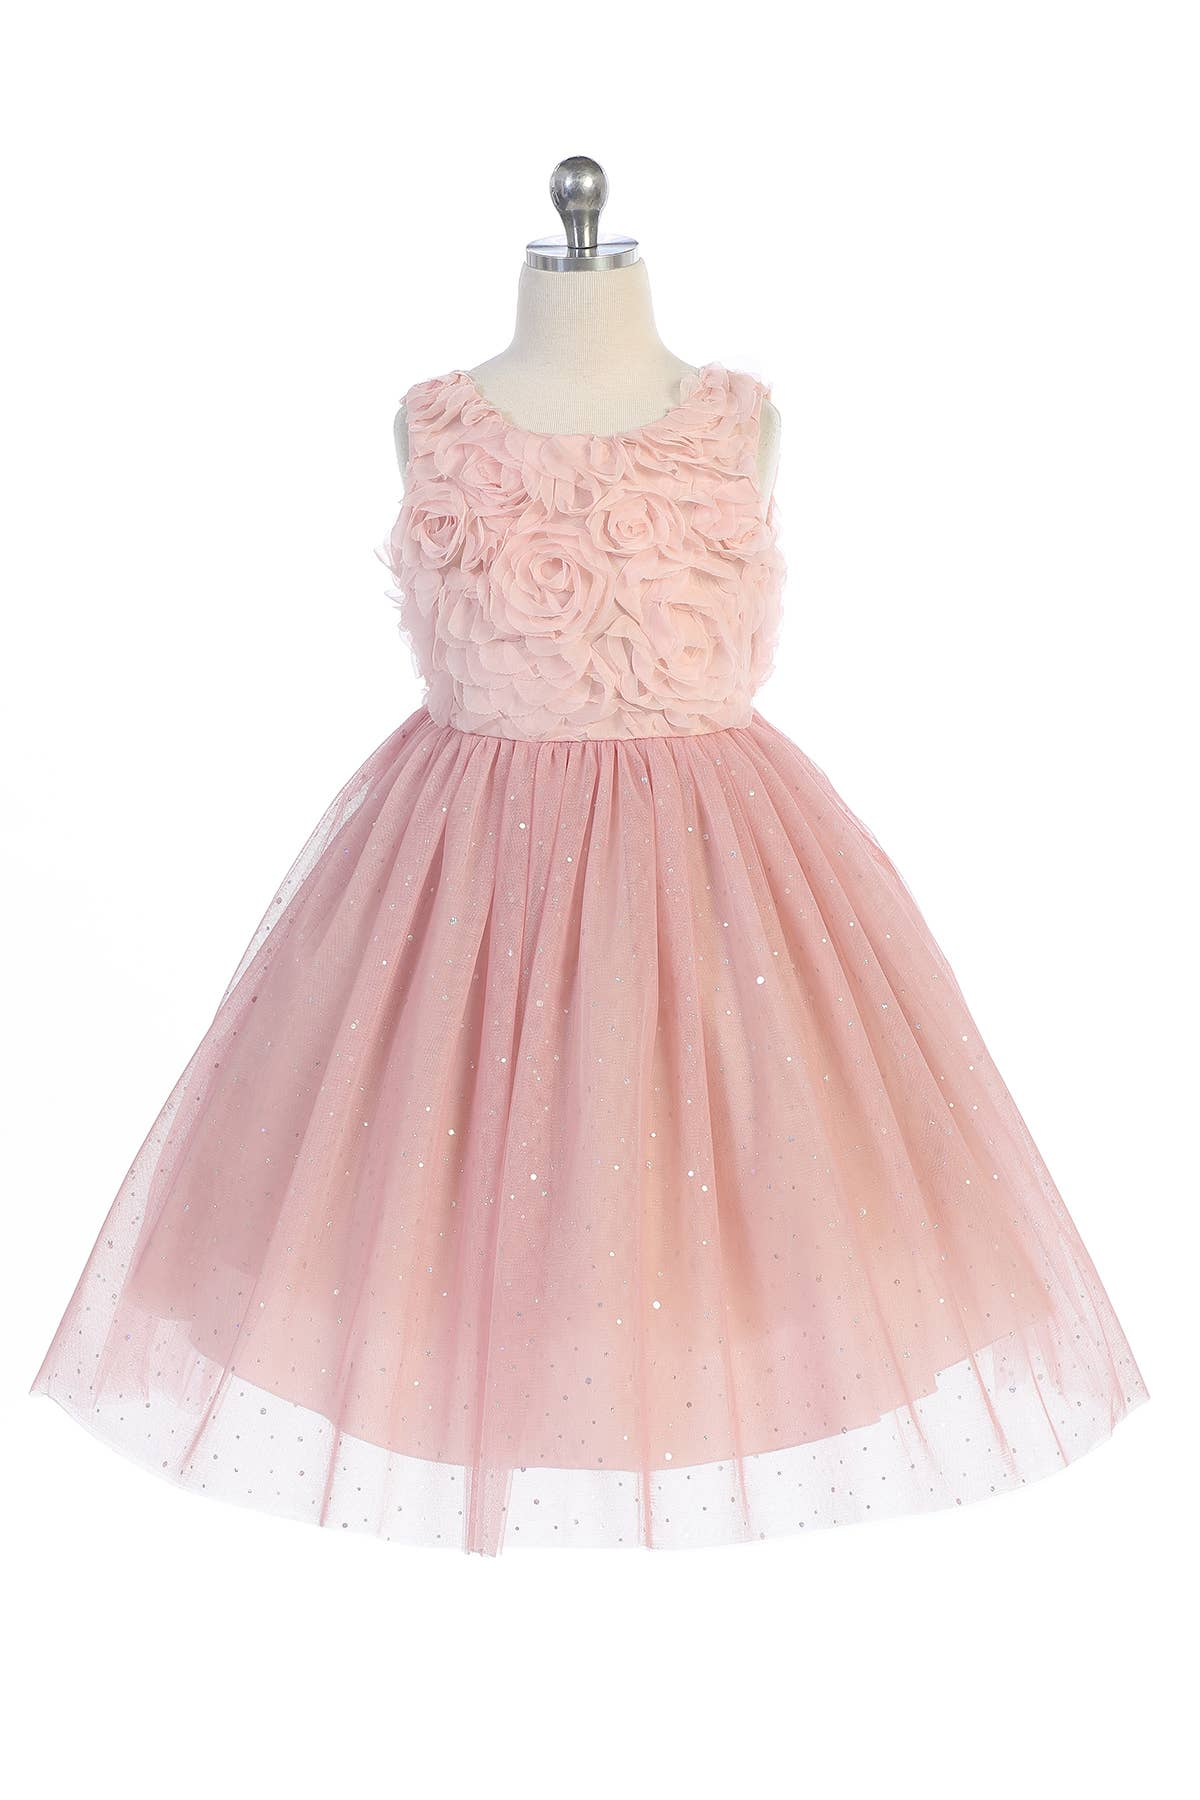 Dusty Rose - 3D Ruffle Glitter Tulle Skirt Dress